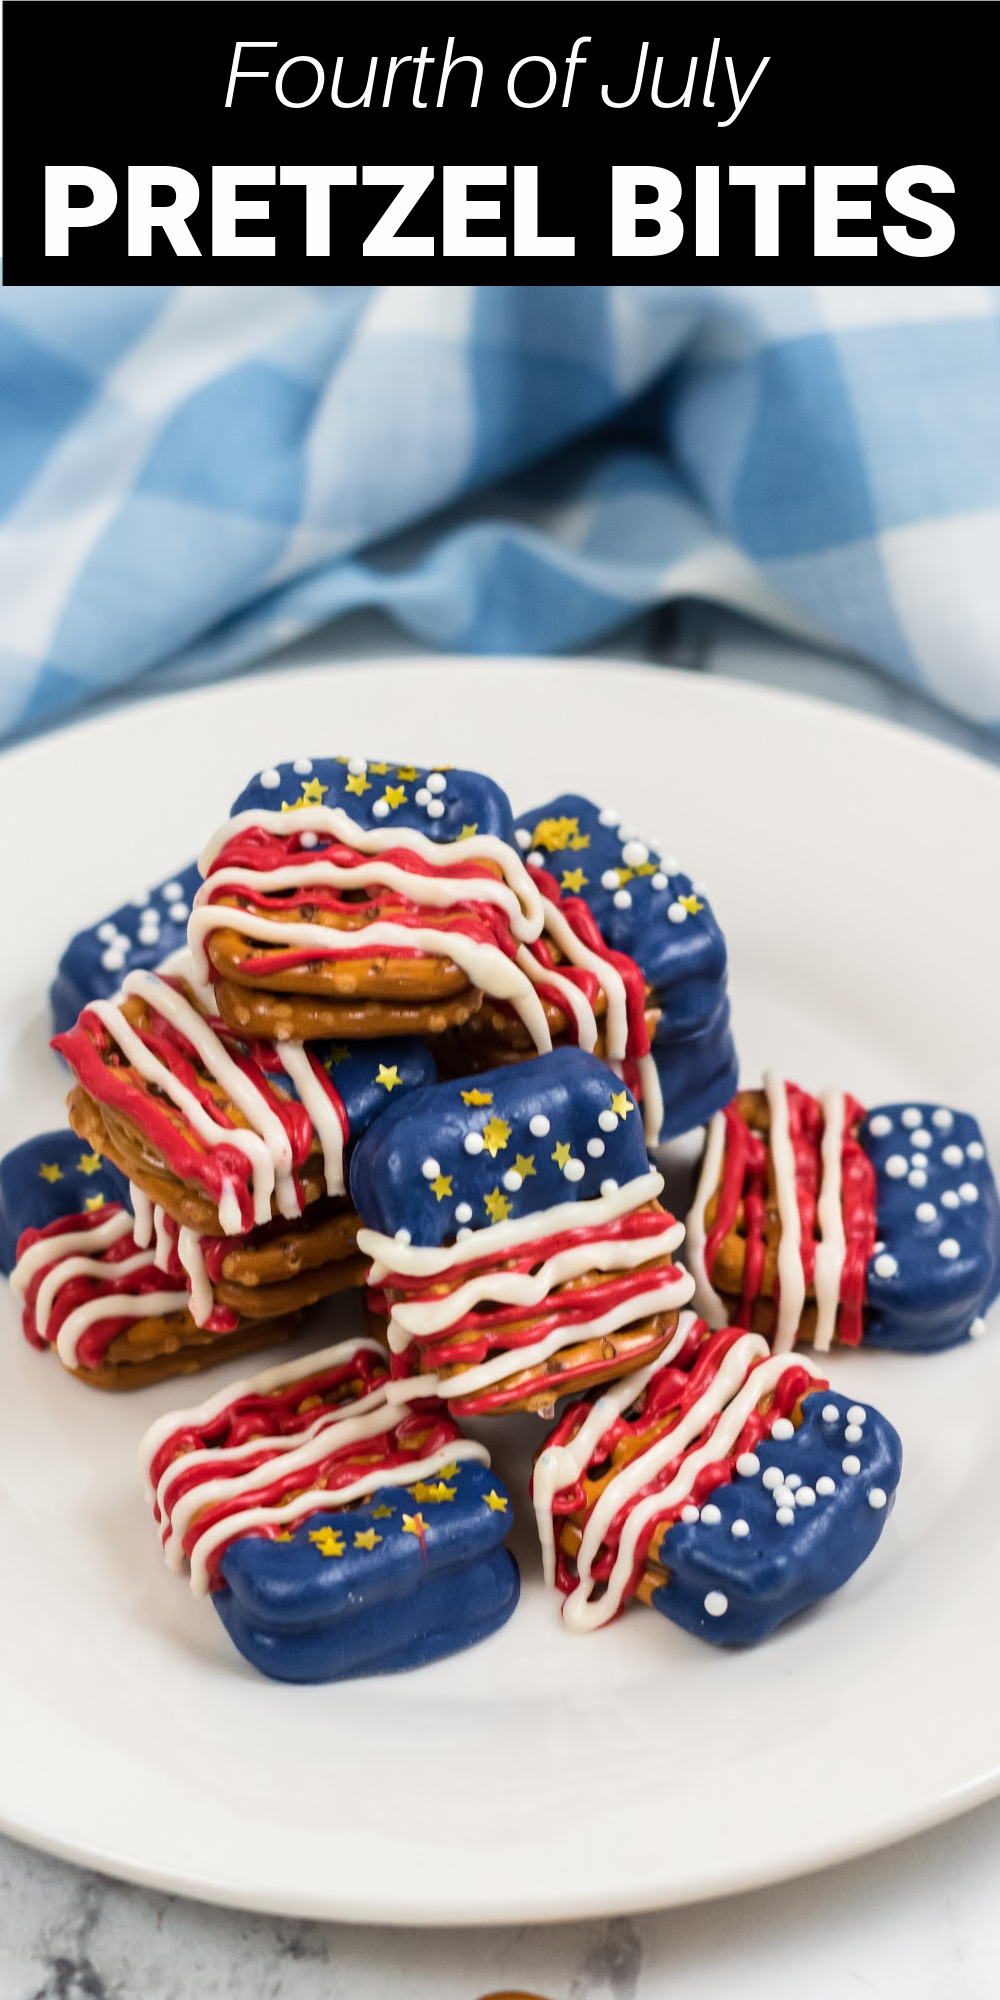 Fourth of July pretzel bites are patriotic treat that are so easy to make with pretzels, caramels, and chocolate! These sweet and salty treats are perfect for Memorial Day, Fourth of July, and Labor Day!